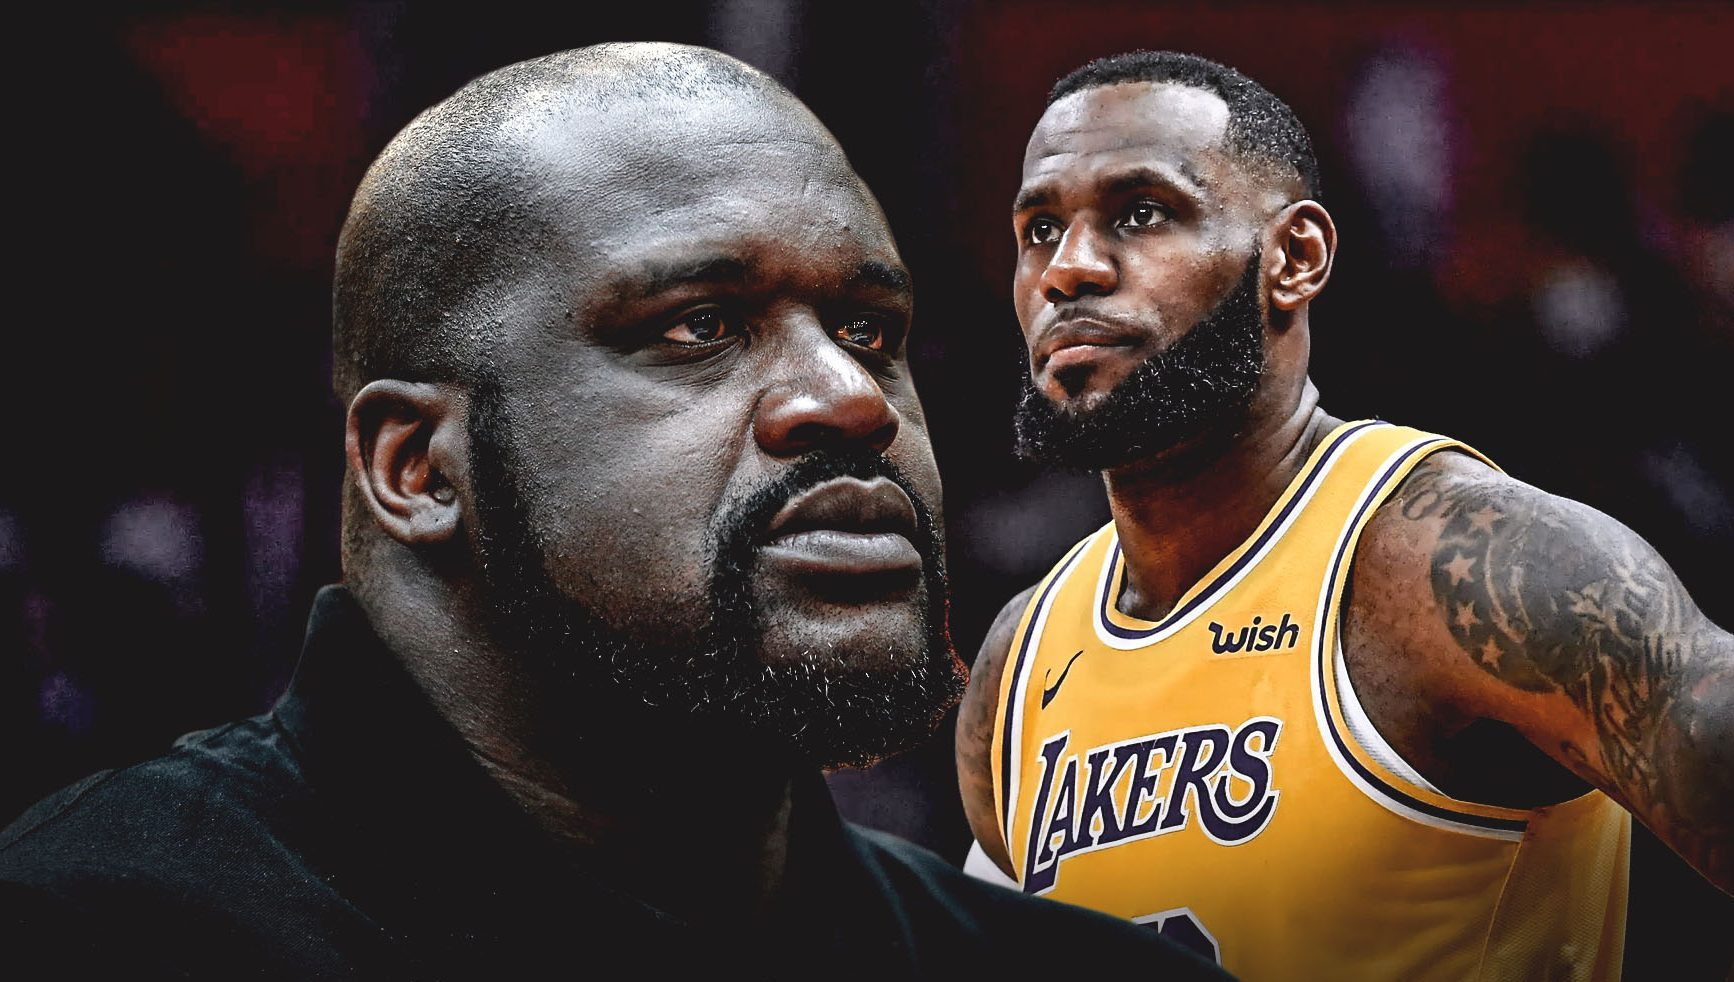 Shaquille O'Neal and LeBron James